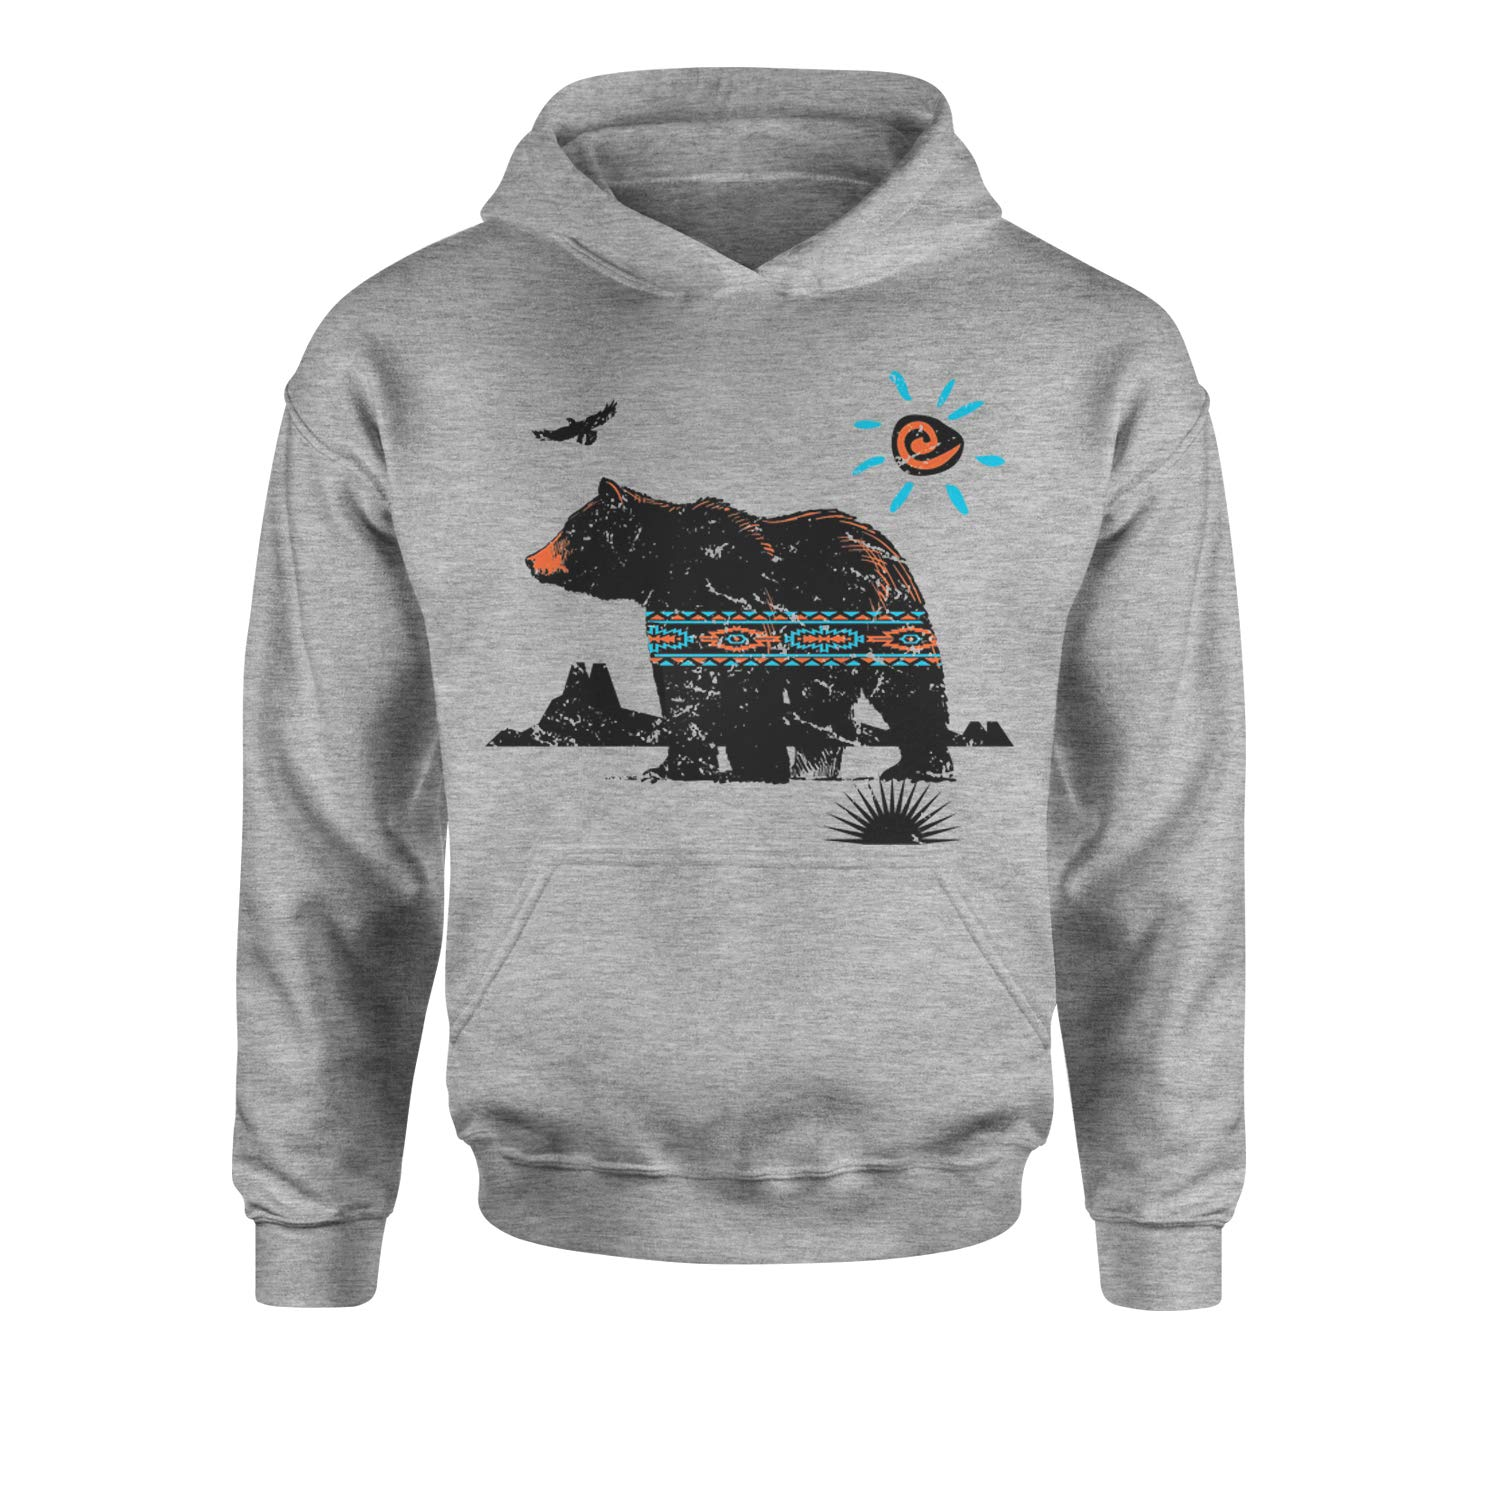 Expression Tees Native American Bear Southwest Youth-Sized Hoodie